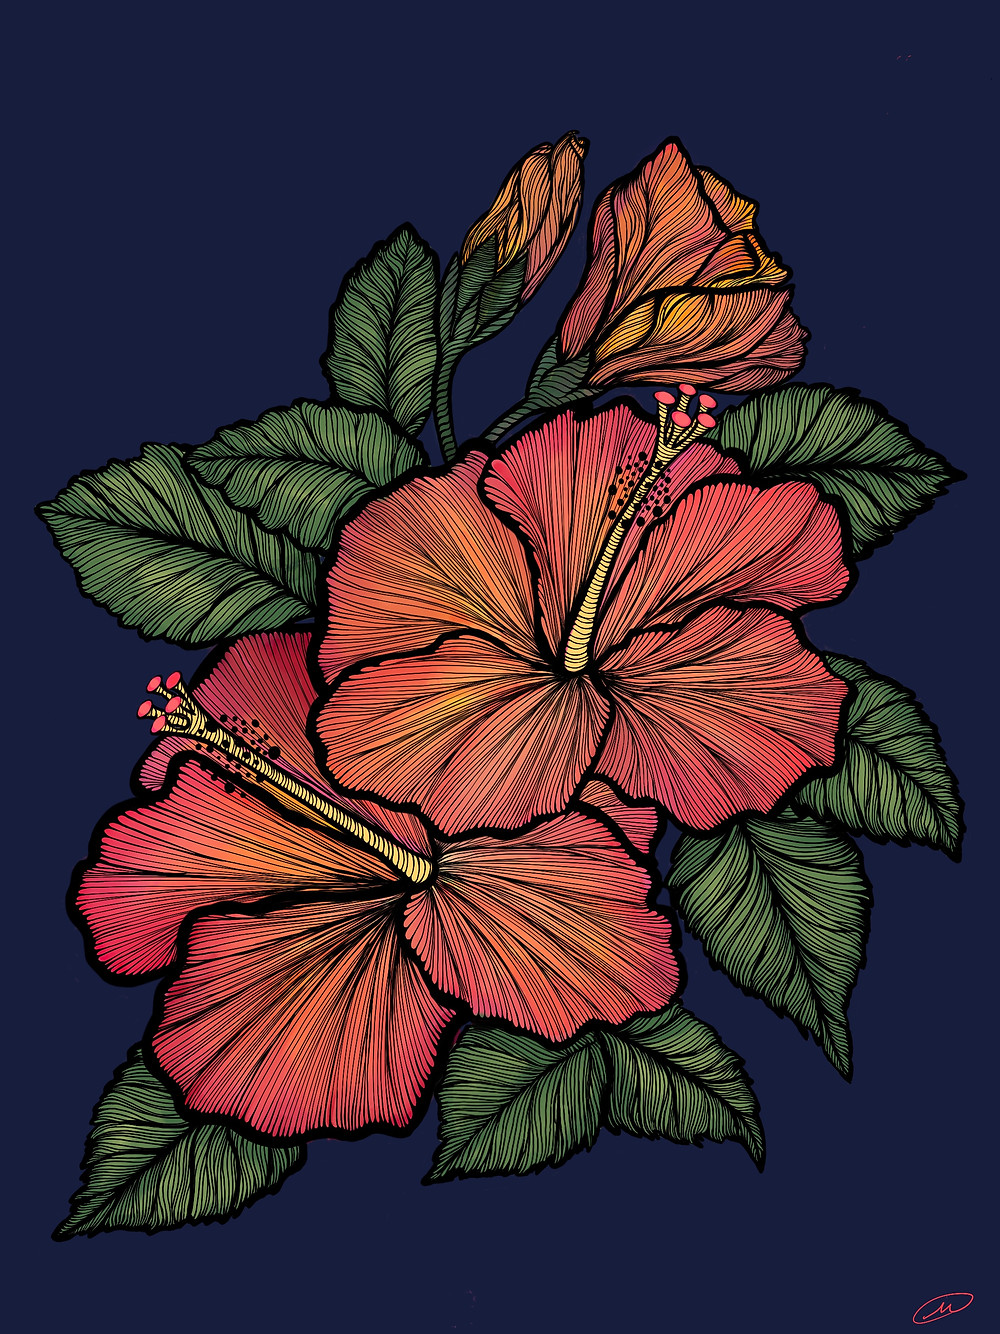 Line drawing of Orange Pink Hibiscus blossoms and green leaves on a dark blue background.  This is a digital illustration